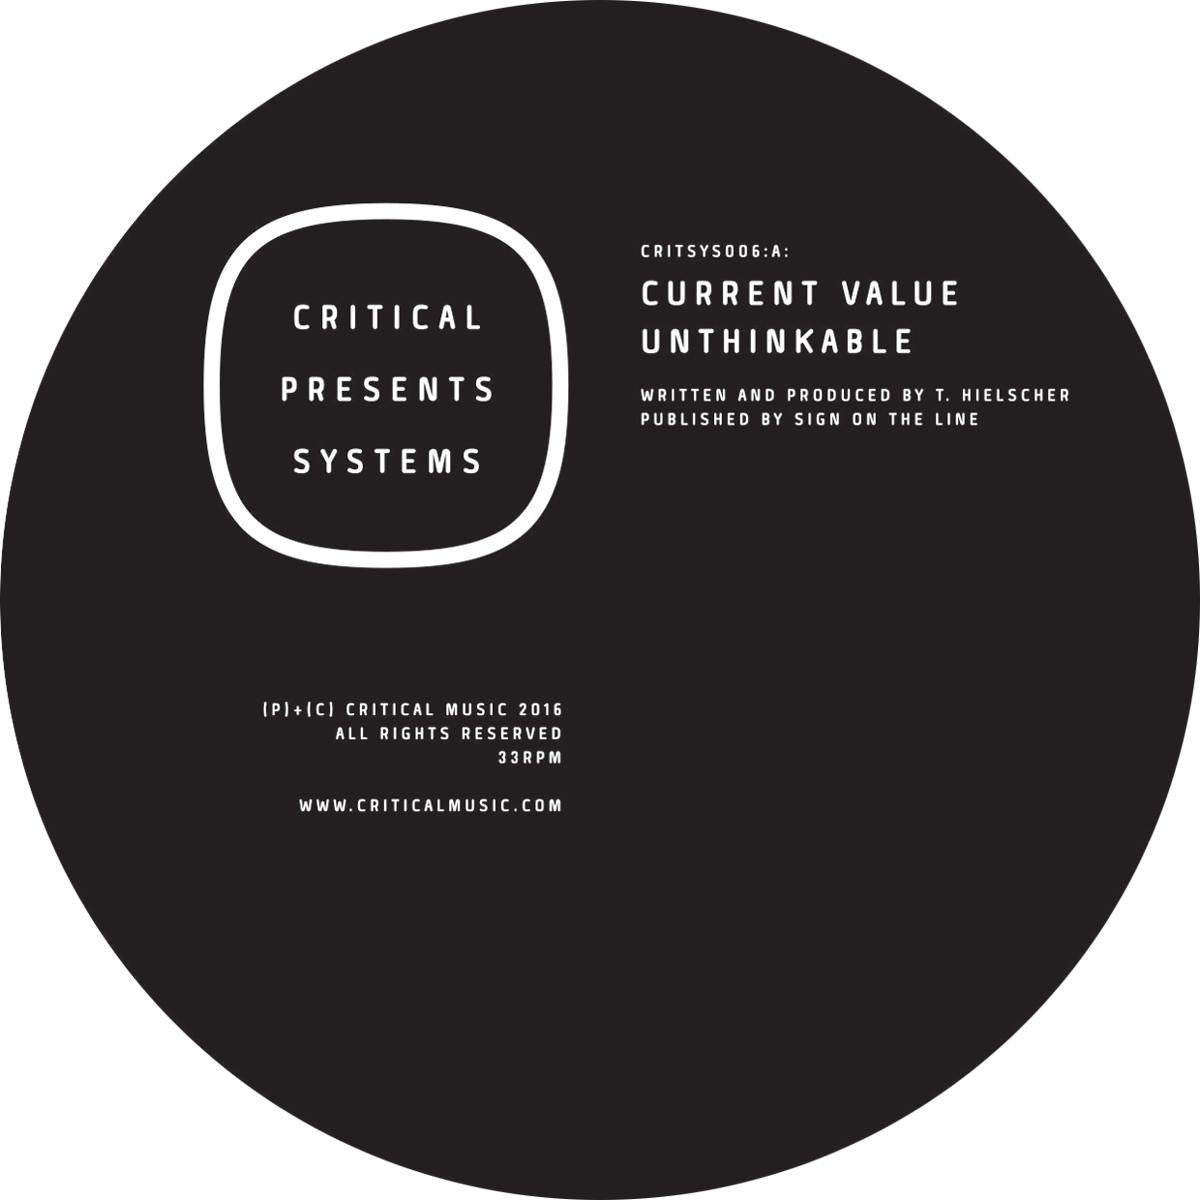 Current Value - Critical Presents Systems 006 , Vinyl - Critical Music, Unearthed Sounds